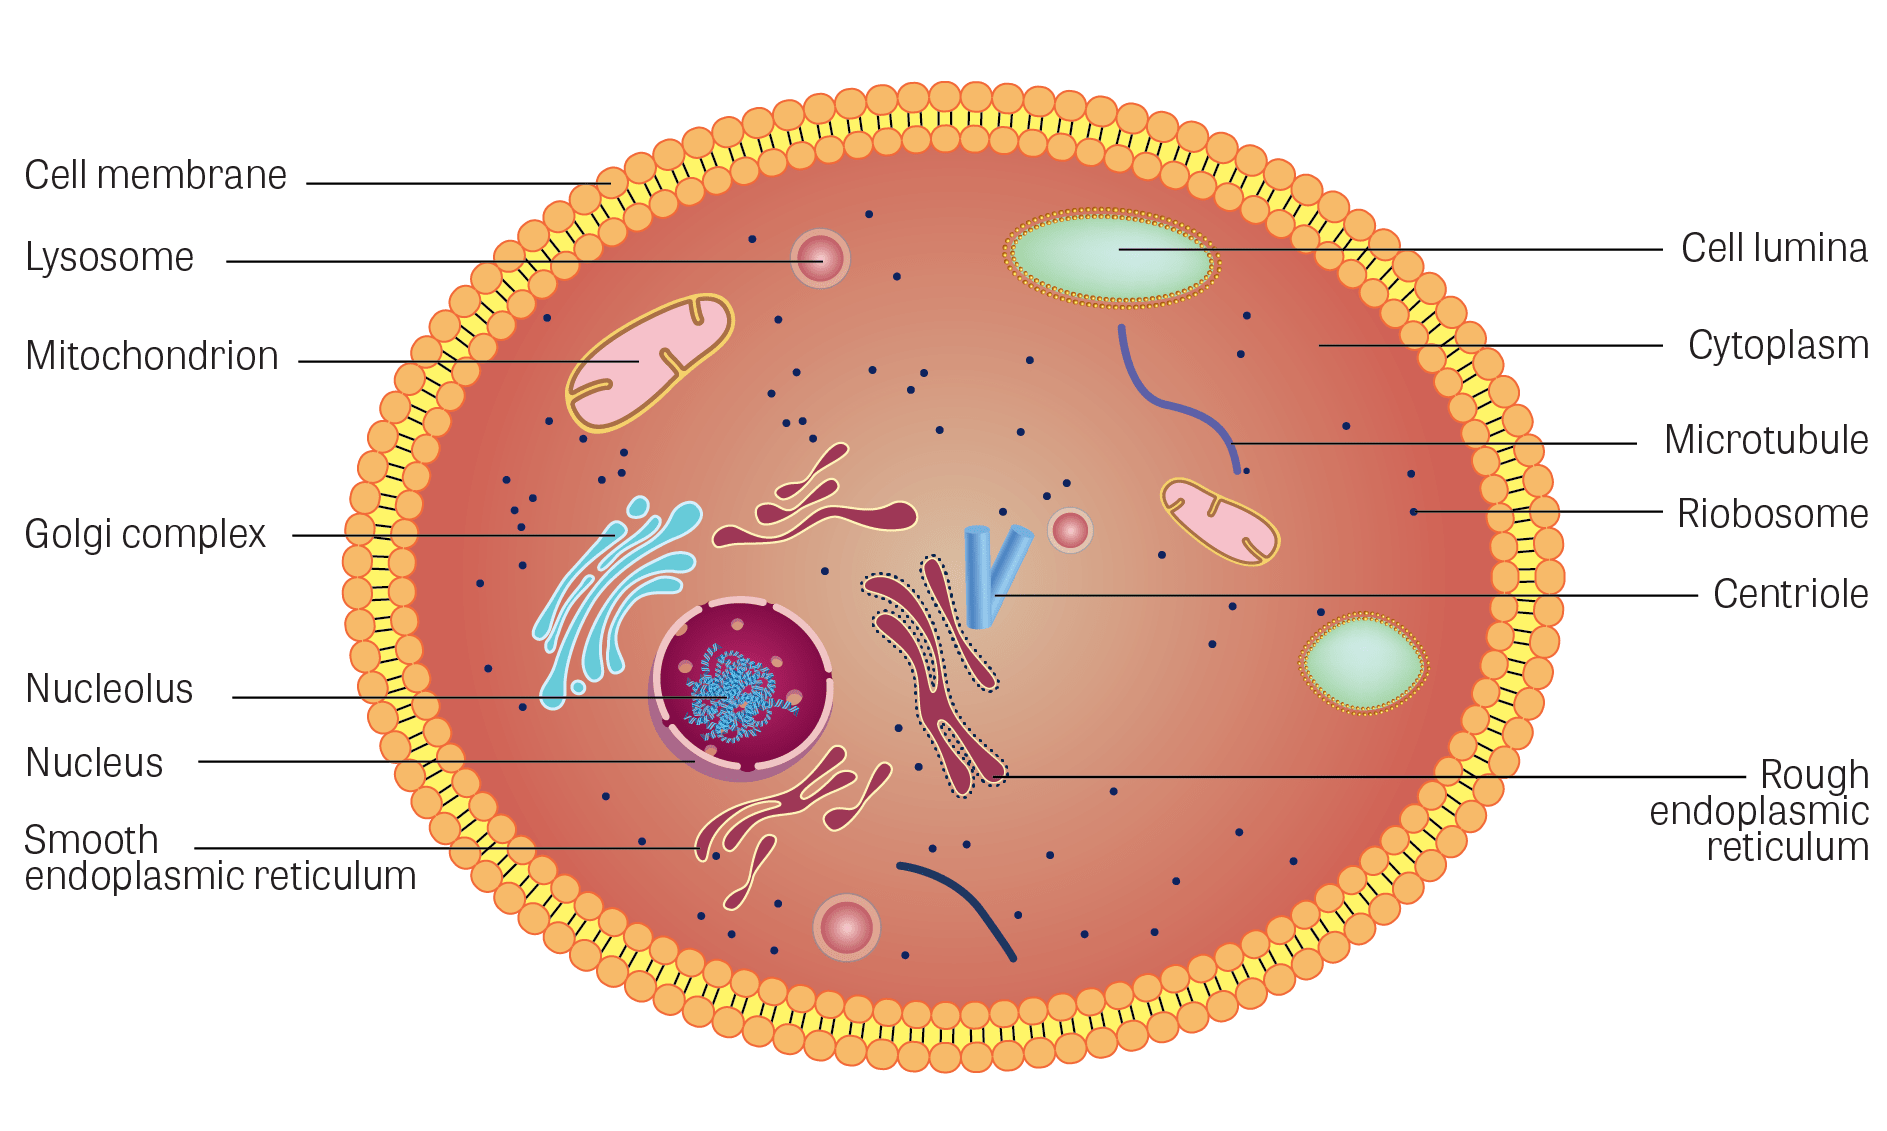 Nucleus transparent cell. Toxtutor cells illustration of